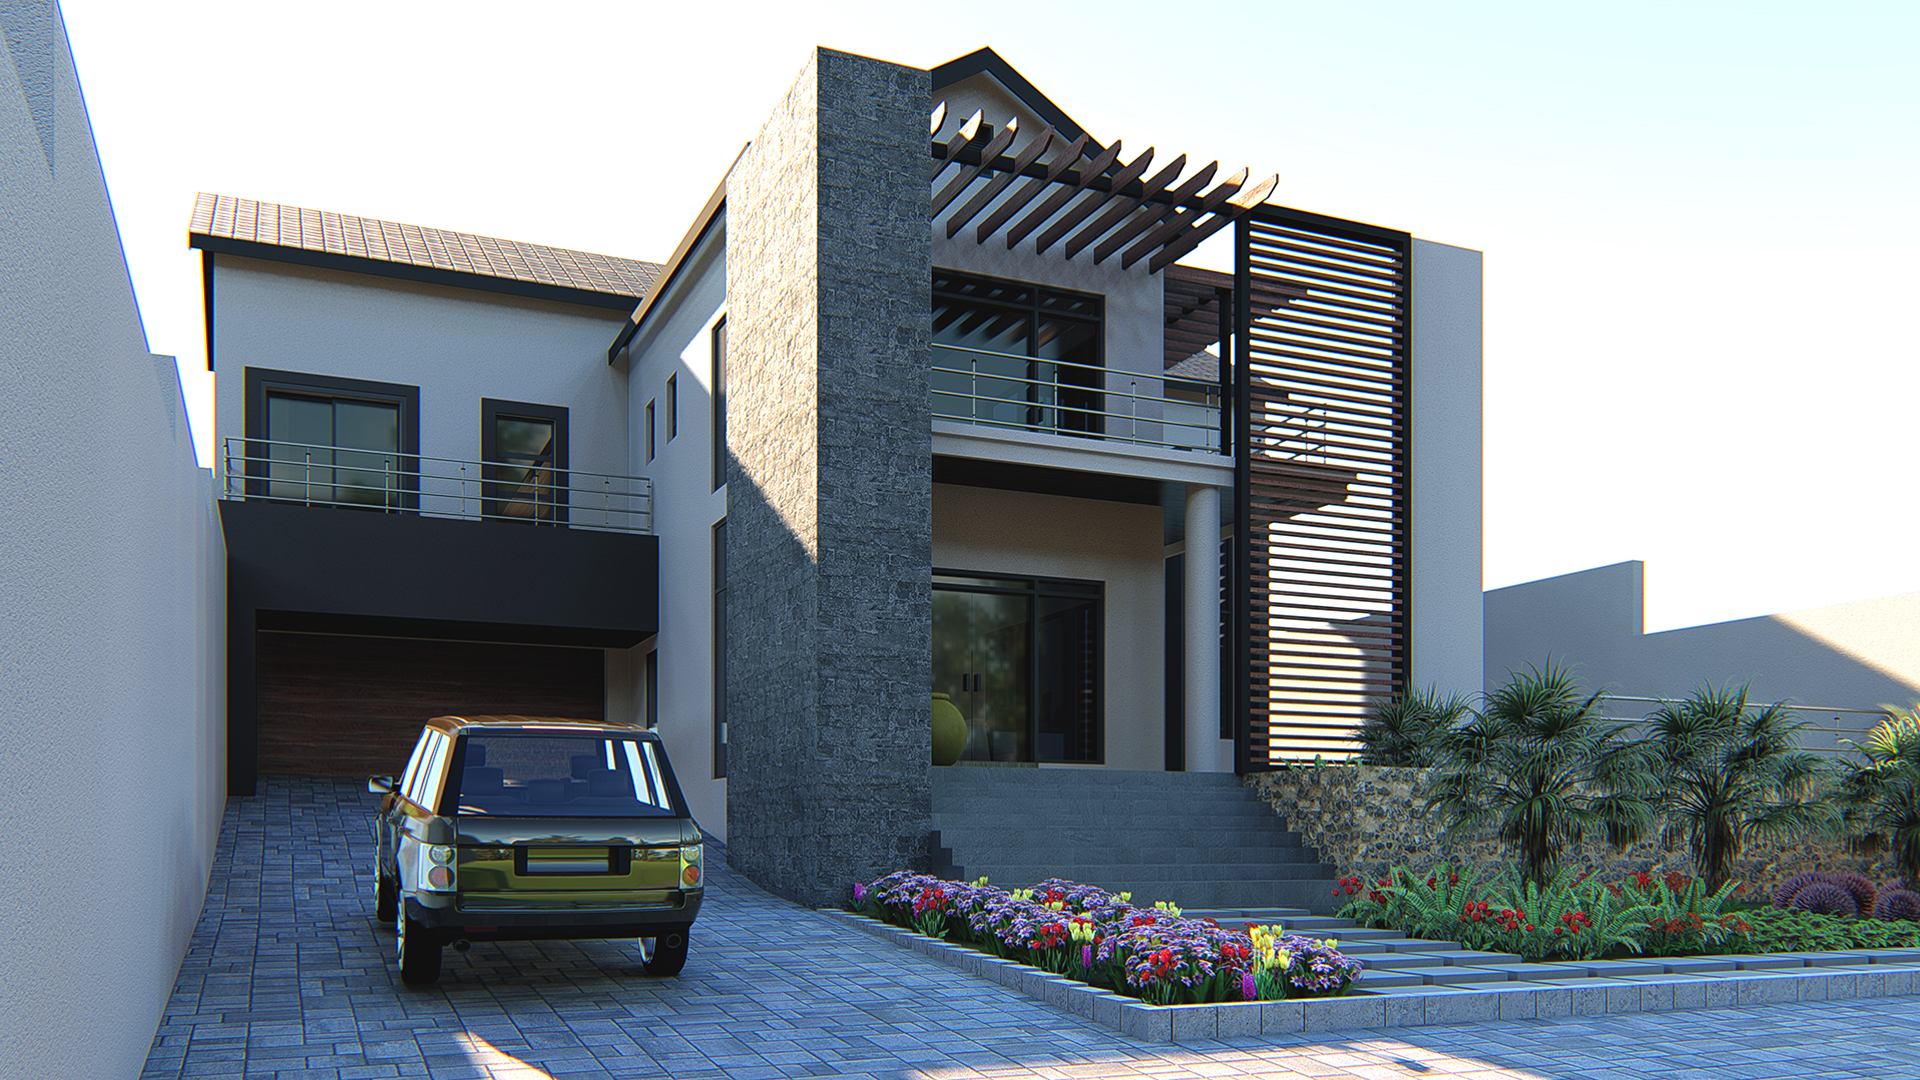 The client wantedsomething different, something that moves away from thetraditional hipped roofed and decorative columns common in their Neighbourhood.